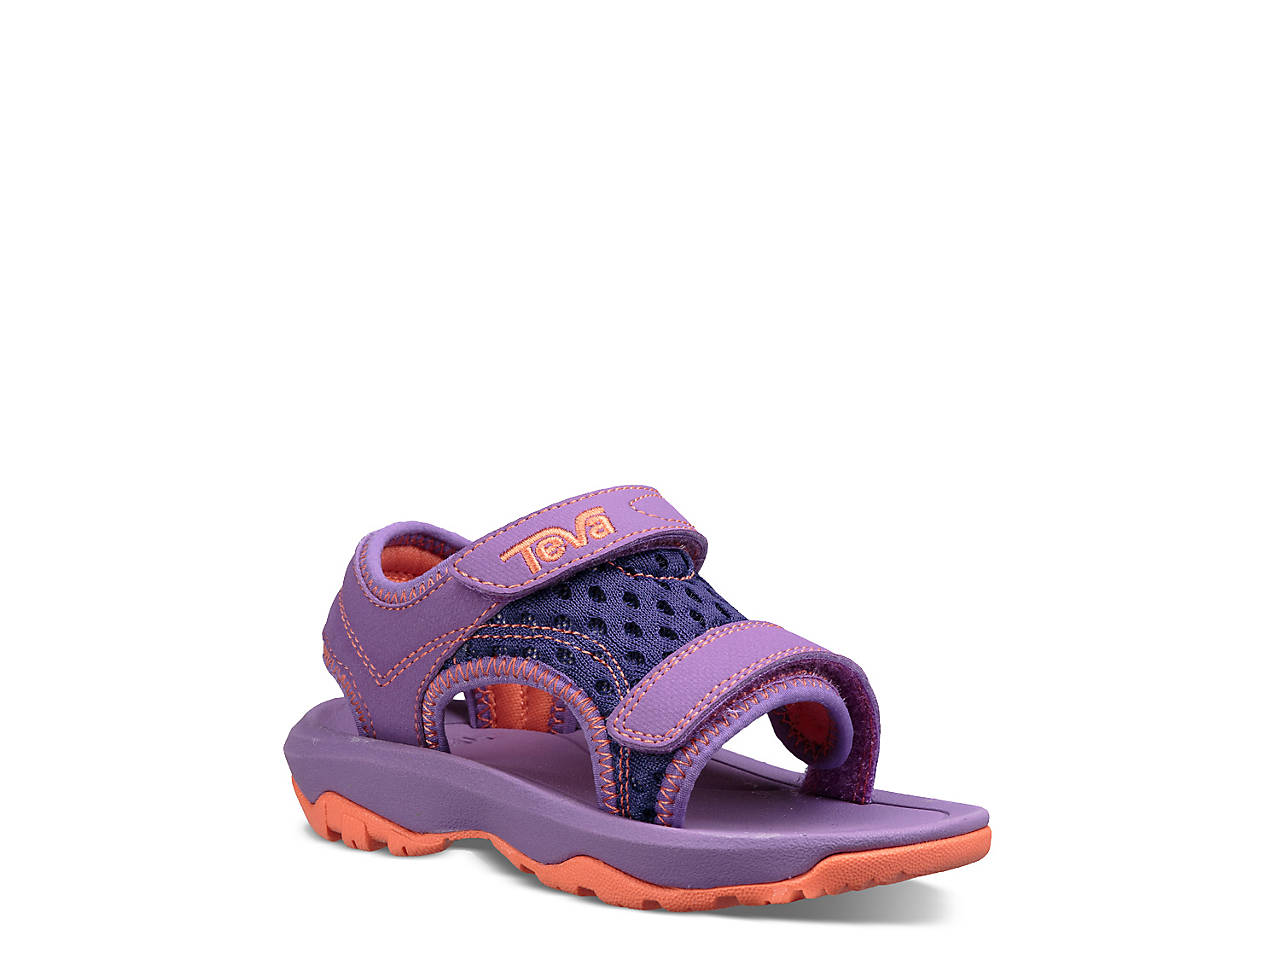 1bf9ed86ffc8c2 Teva Psyclone XLT Infant   Toddler Sandal Kids Shoes